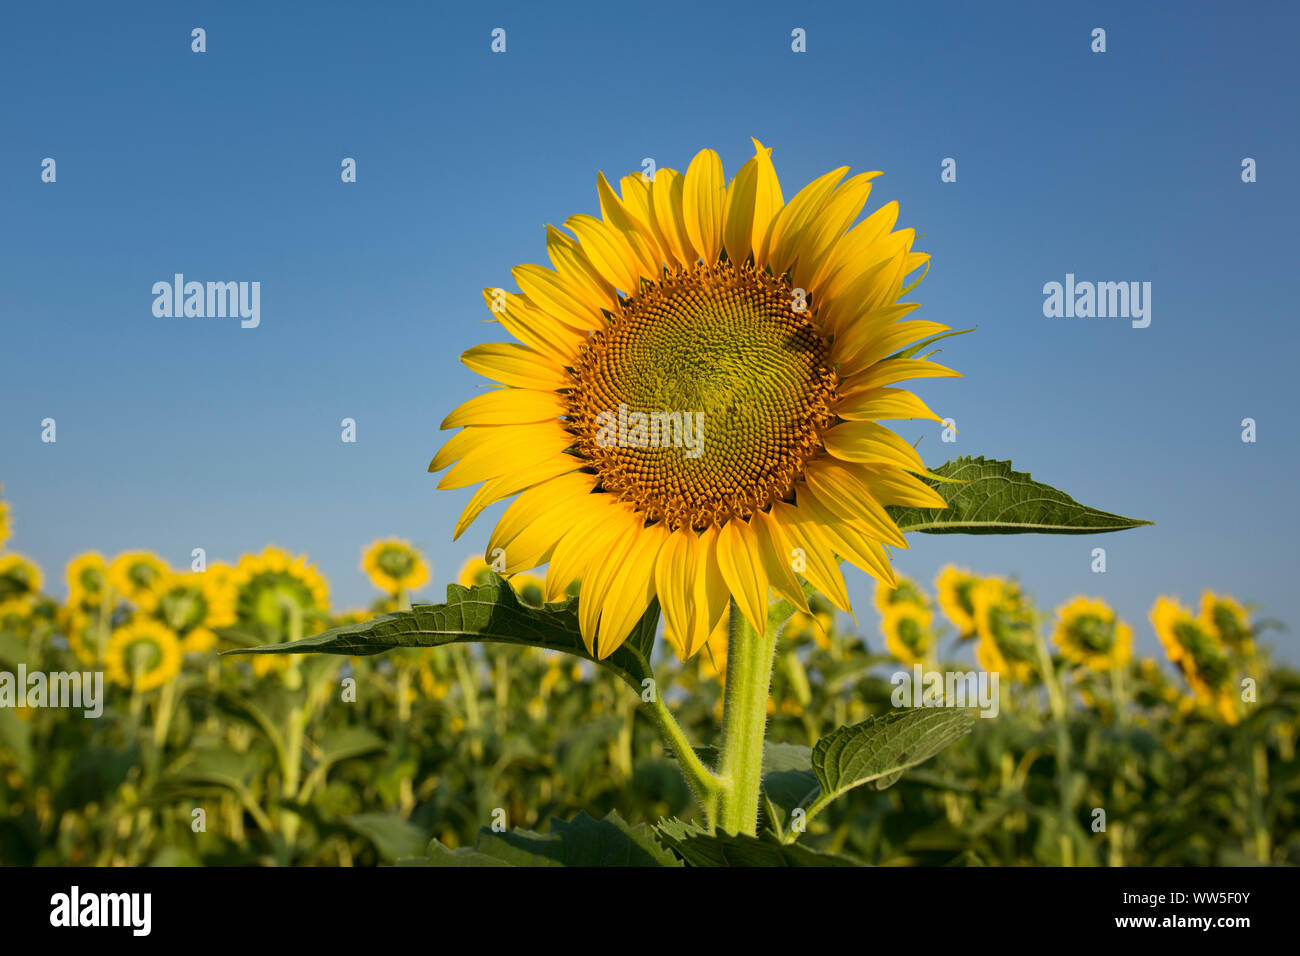 Single sunflower, in the background turned away sunflowers with blue sky Stock Photo